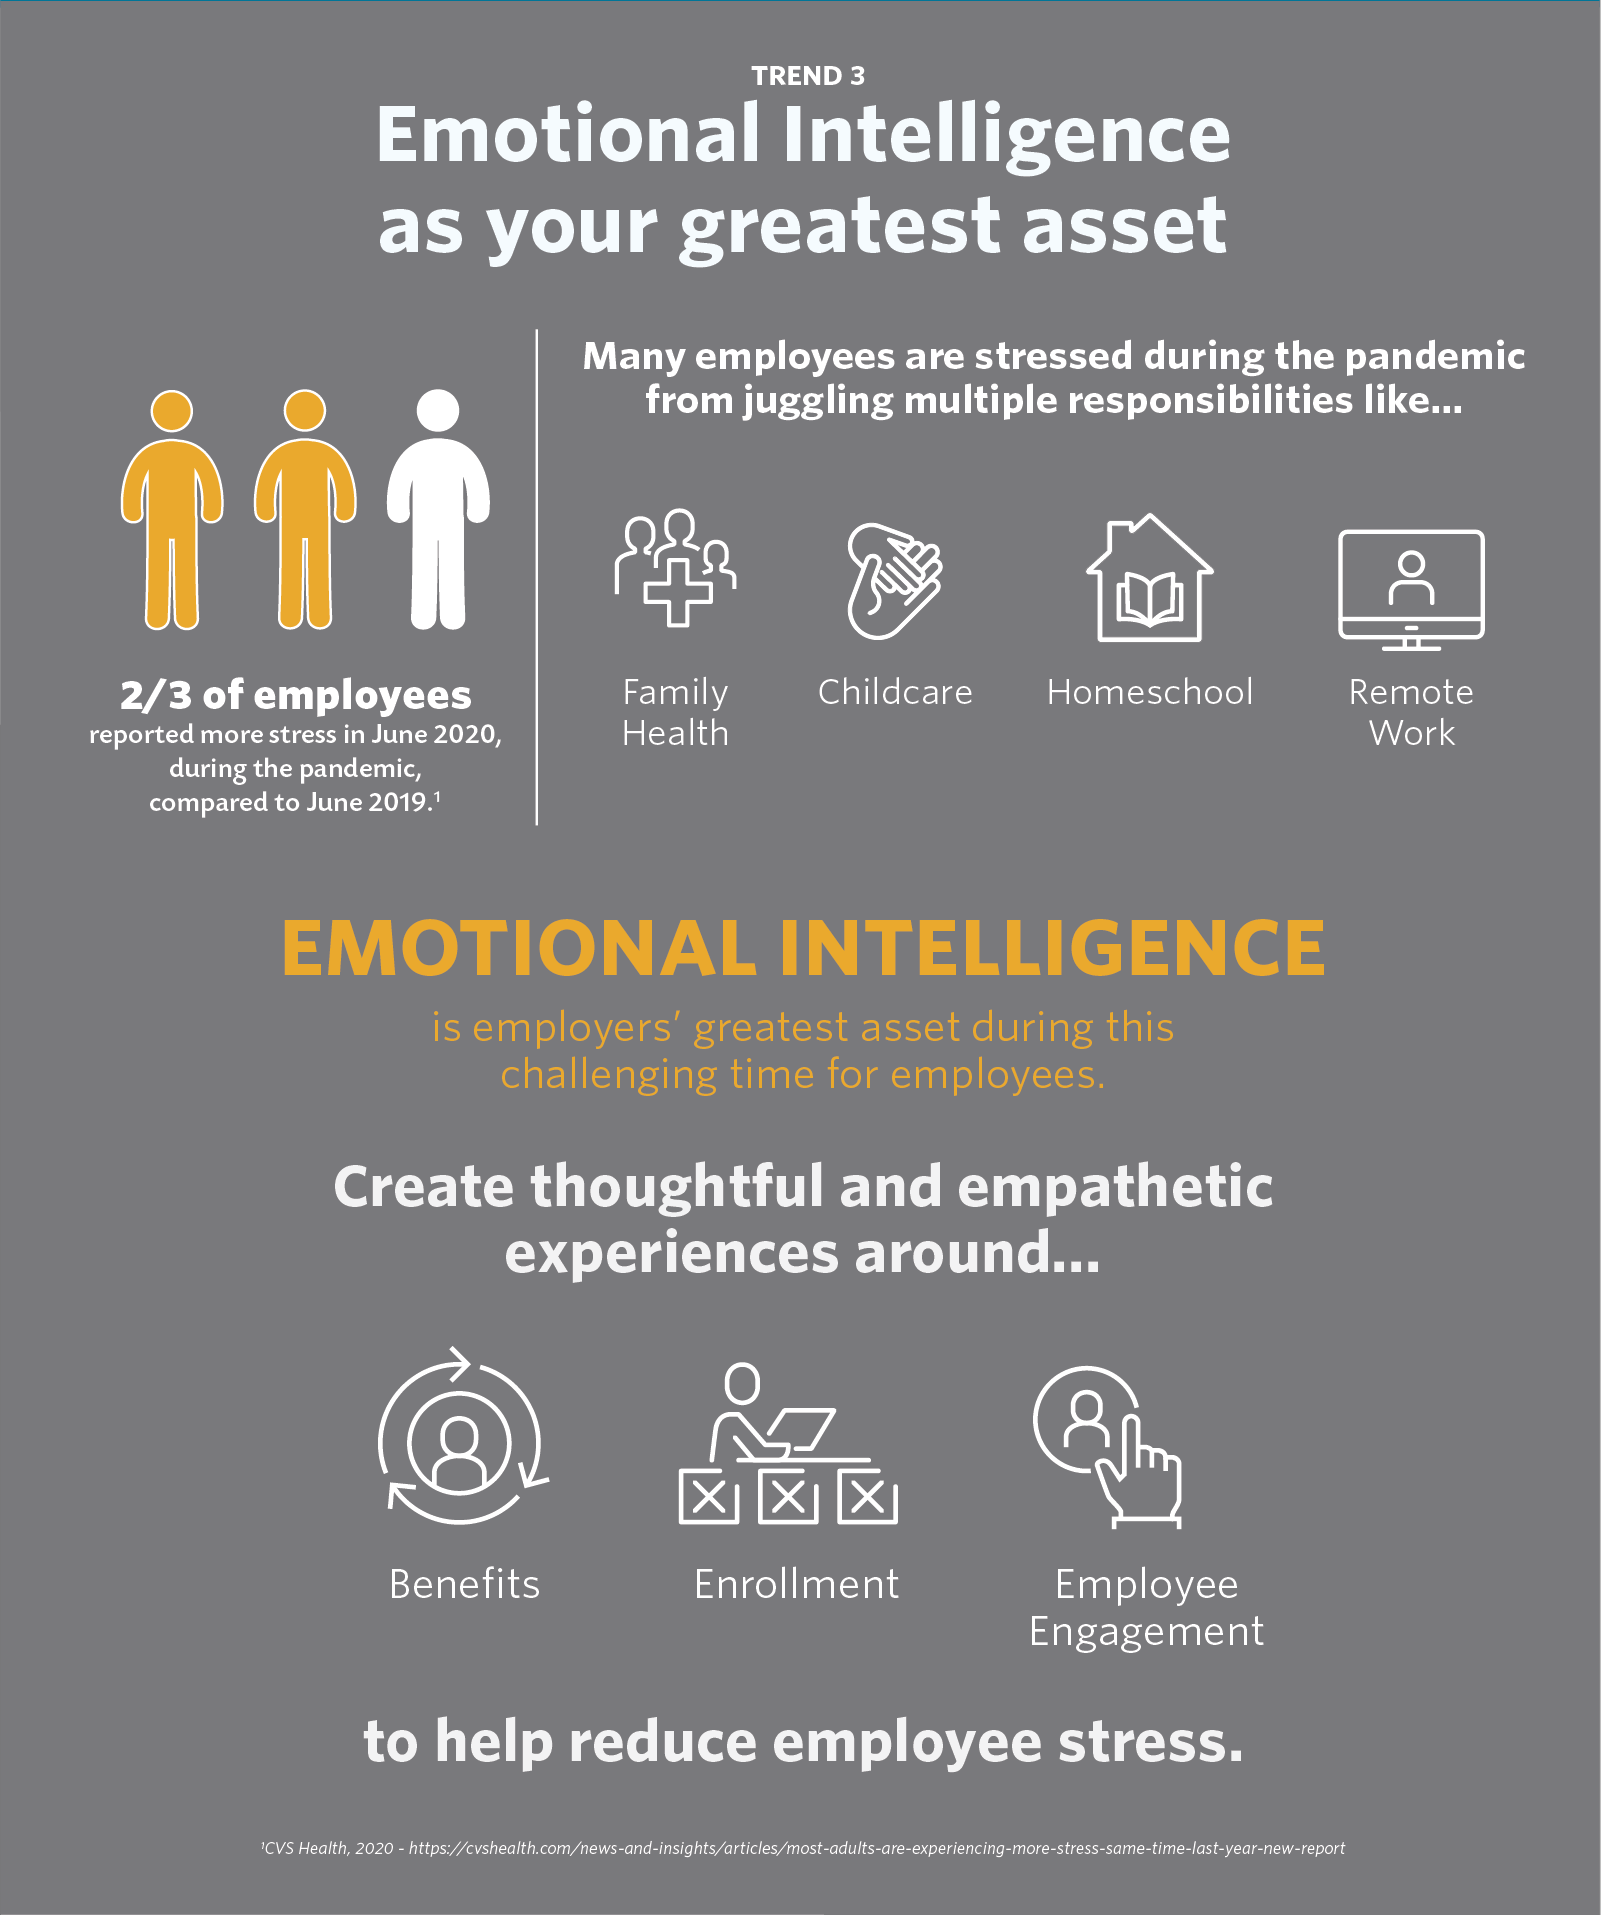 Trend 3 - Emotional Intelligence as your greatest asset